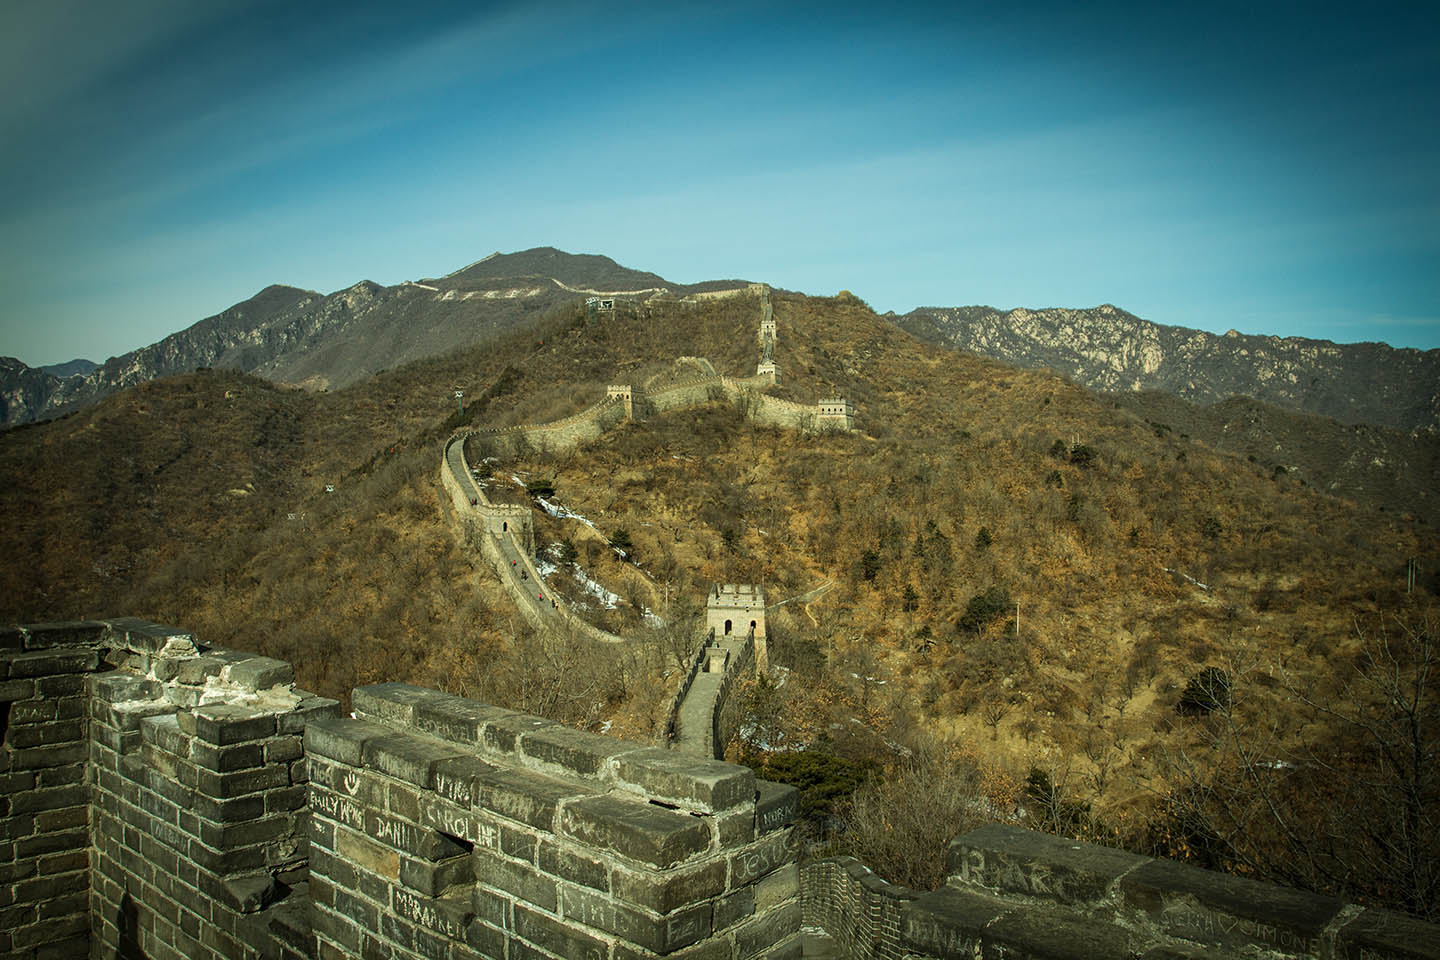 The endless Great Wall of China / Scheinbar endlose chinesische Mauer